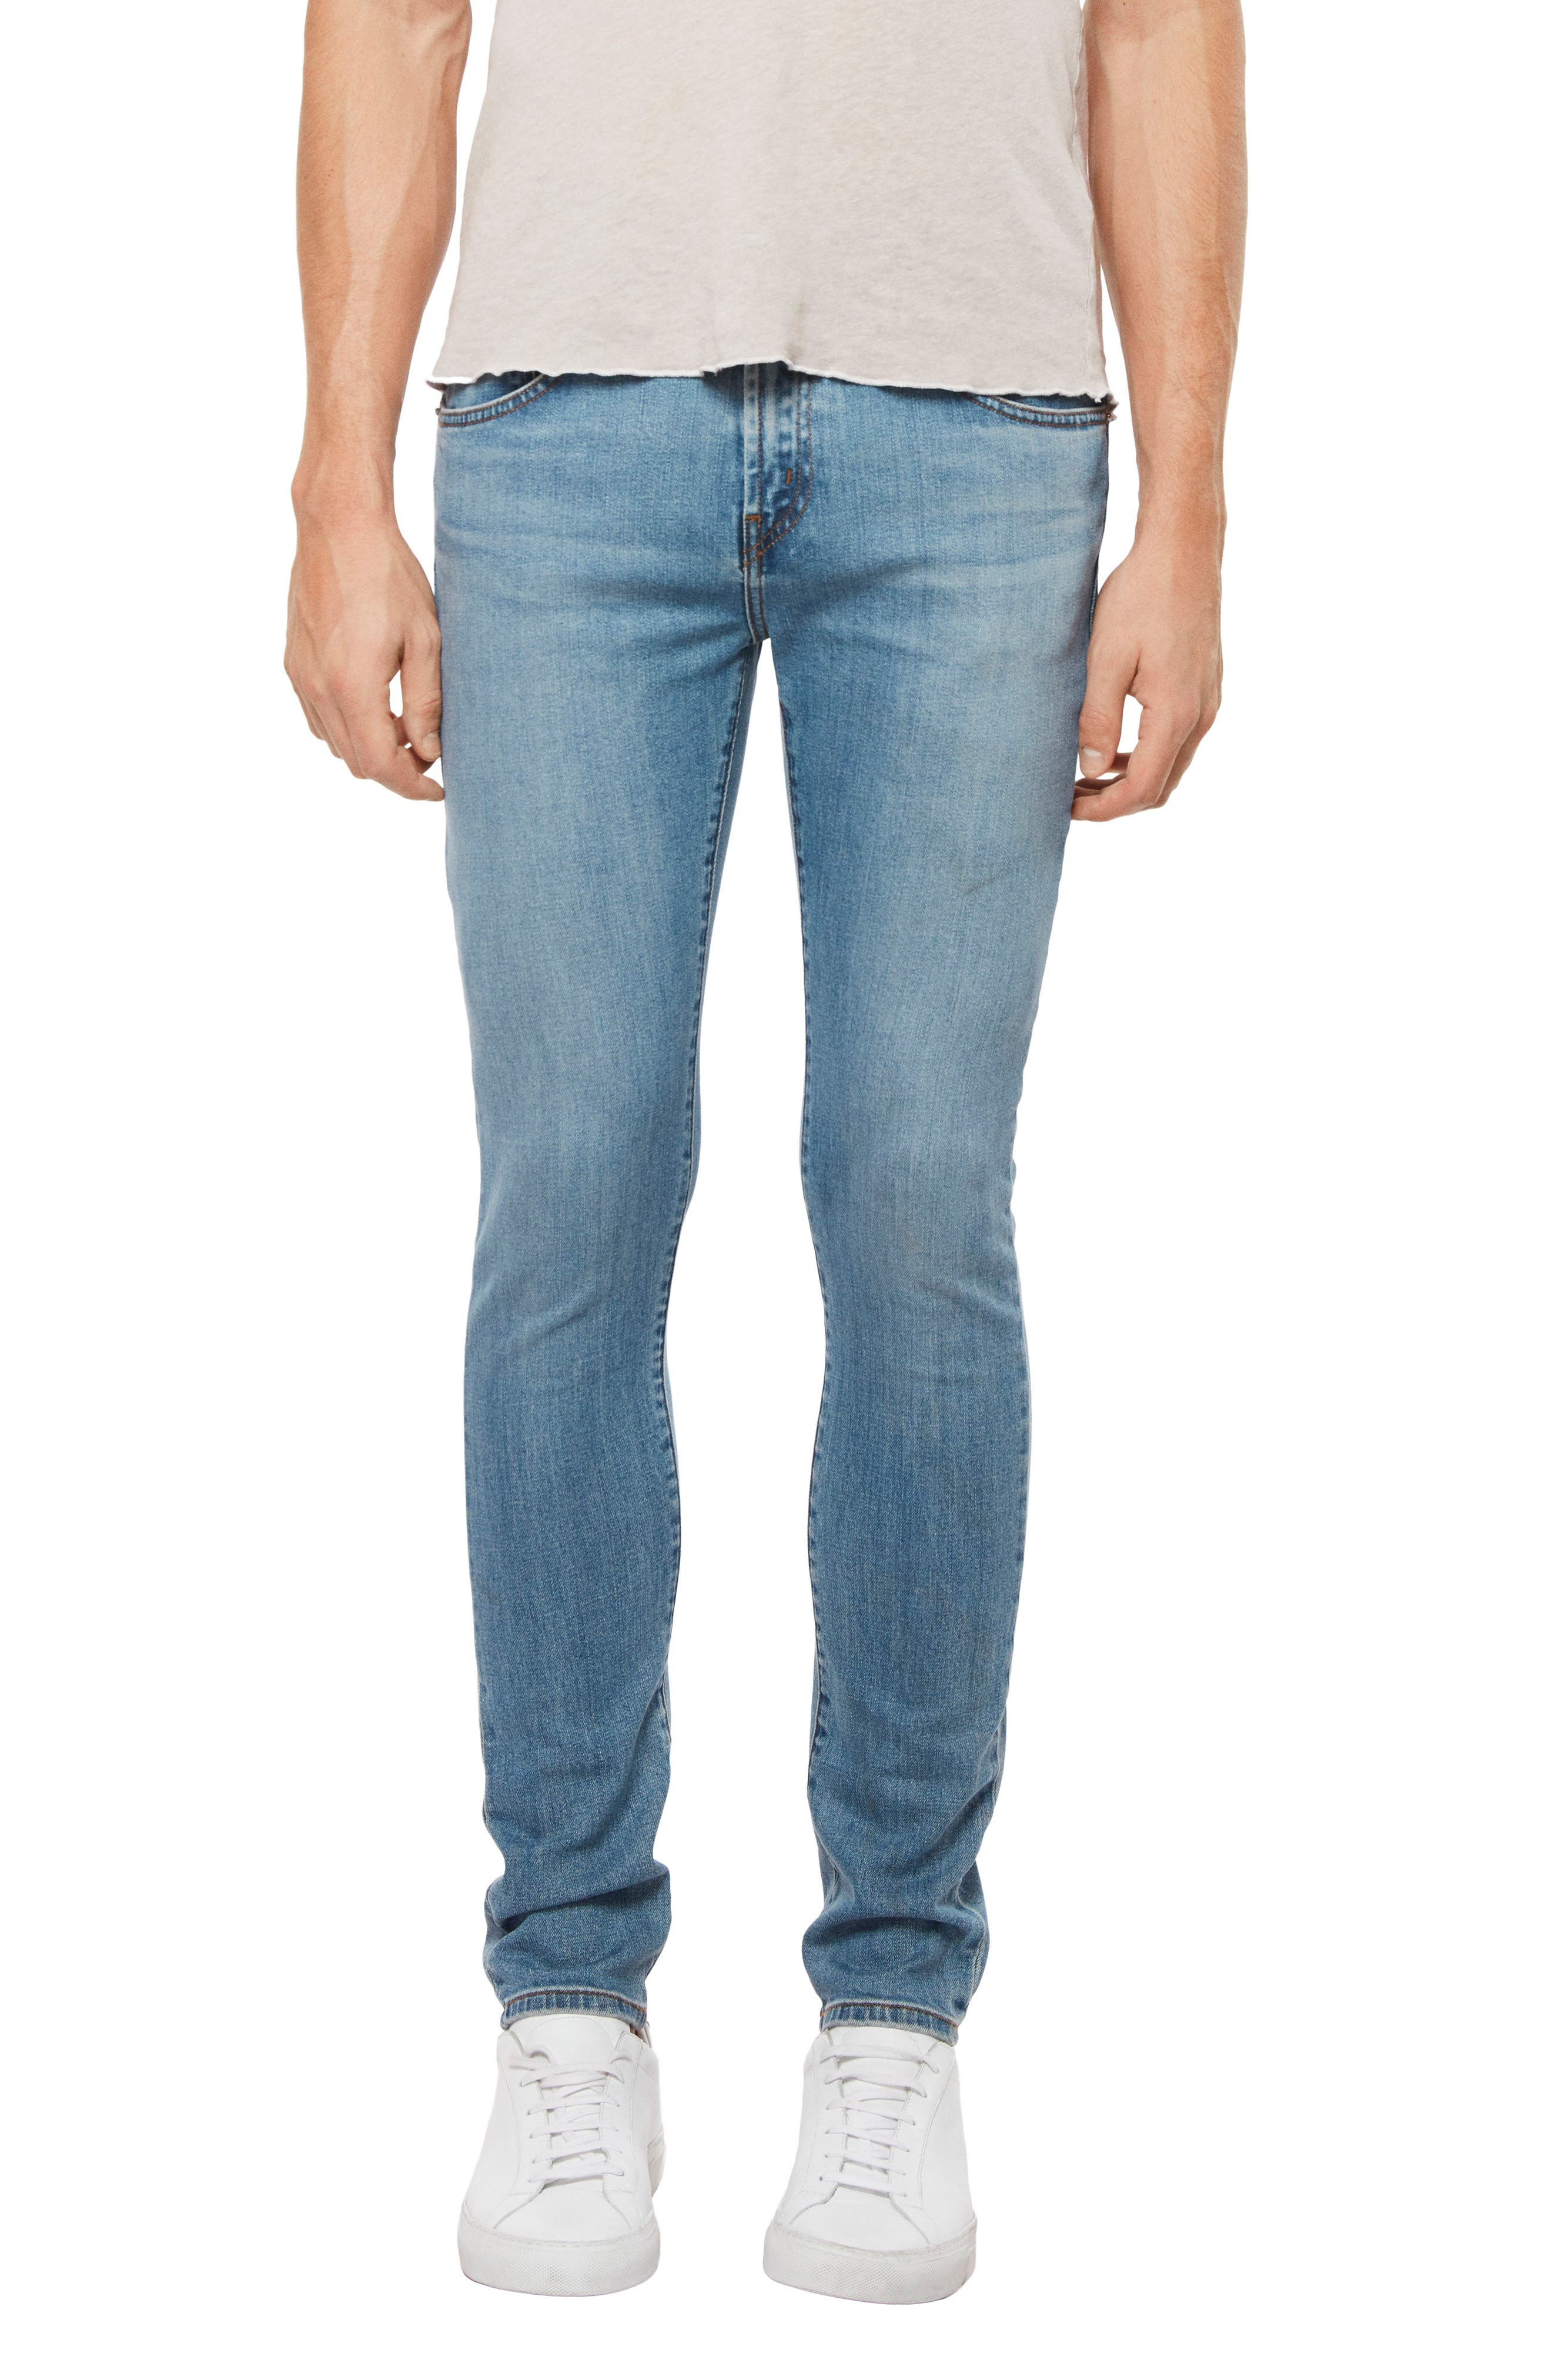 Skinny Fit Jeans,                             Main thumbnail 1, color,                             Stagon